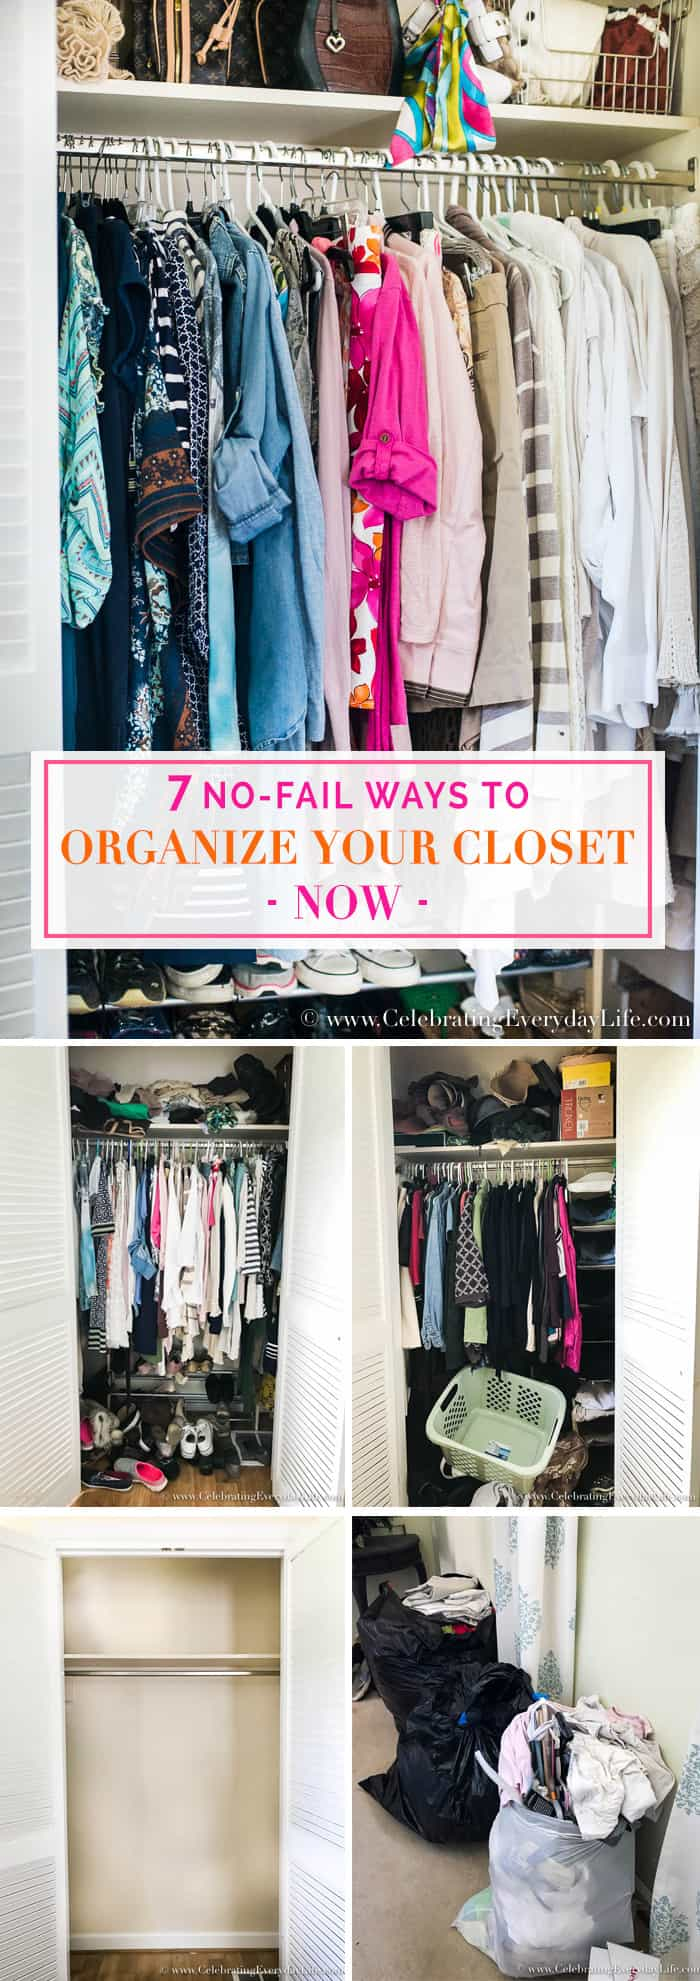 Organize Your Closet With A Capsule Wardrobe: 7 No-Fail Ways To Organize Your Closet Now